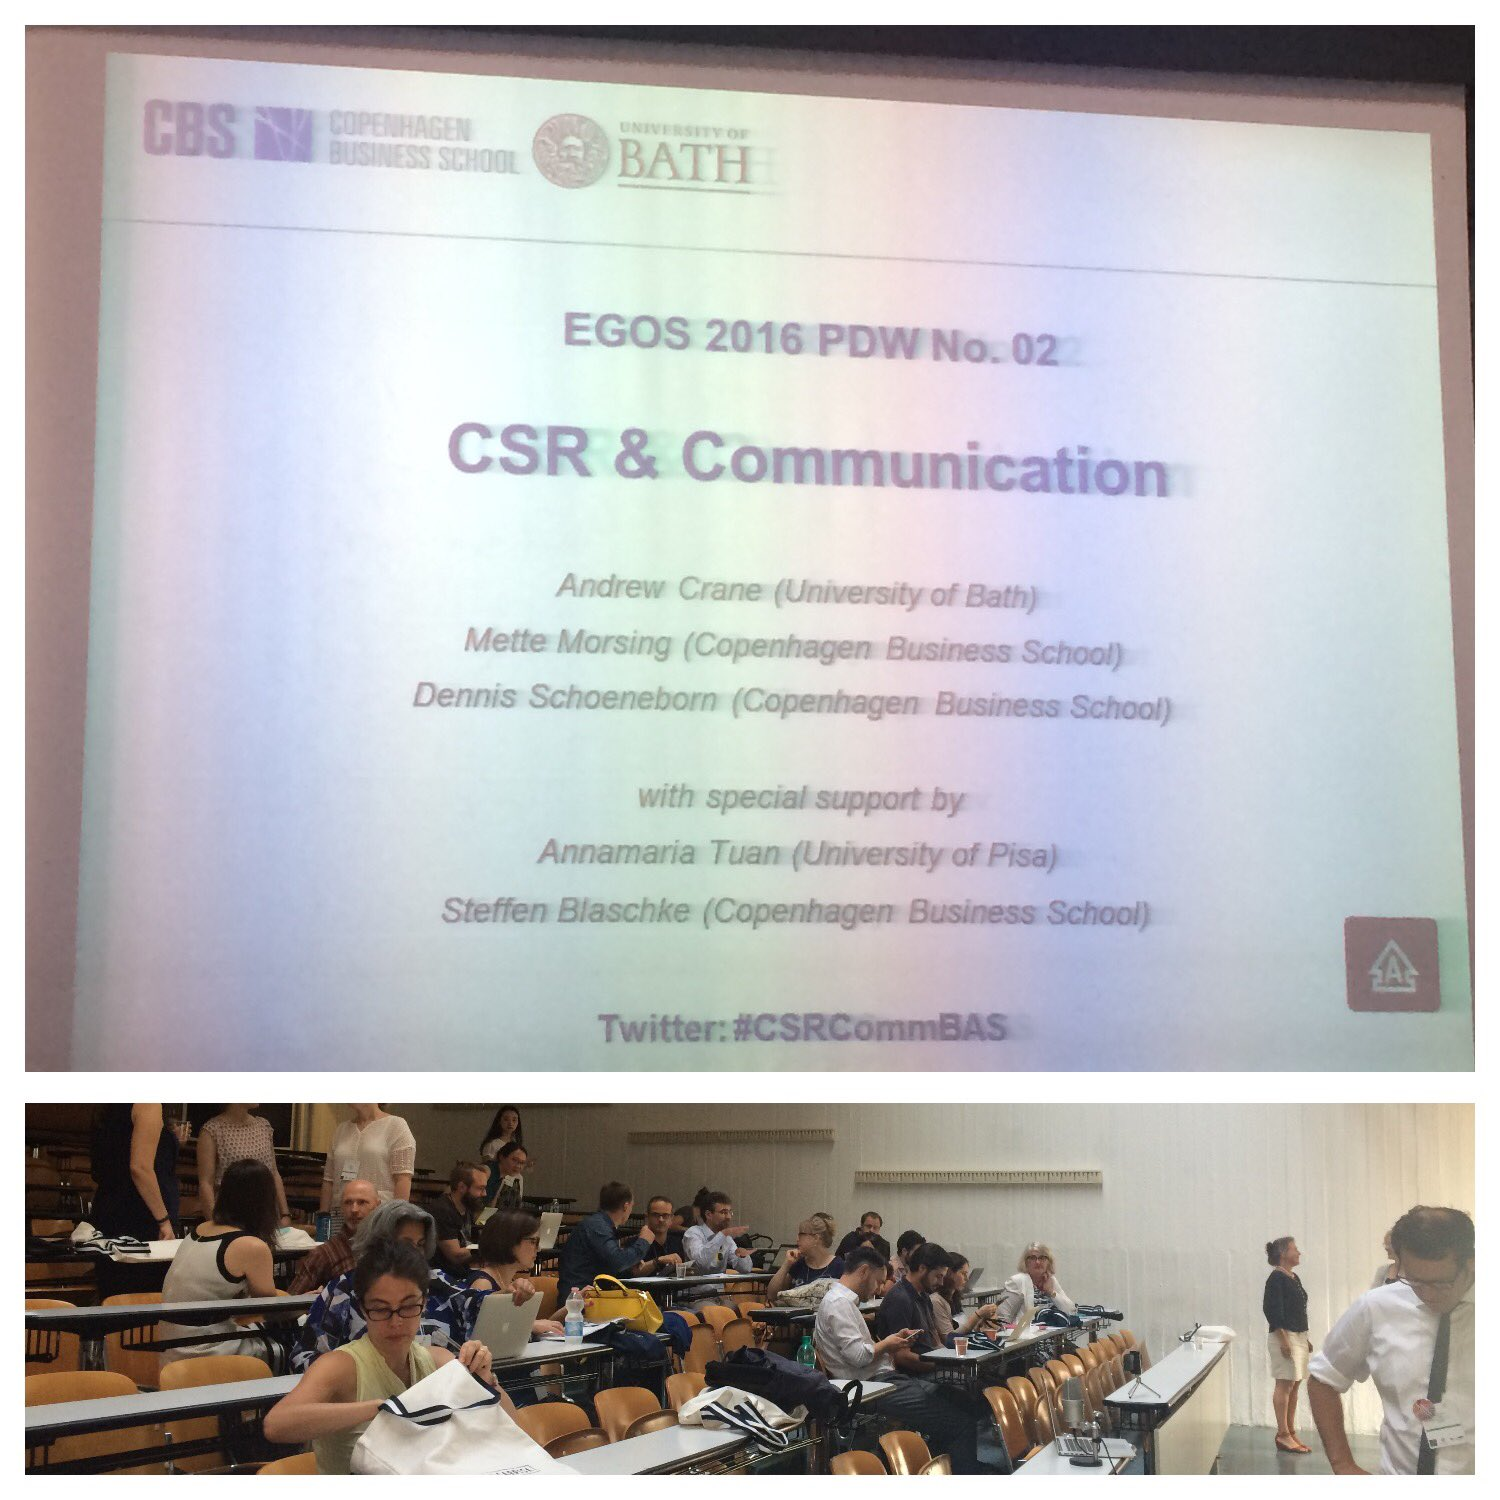 Ready to start #CSRCommBAS #Egos2016 https://t.co/SiOZfGgvfA